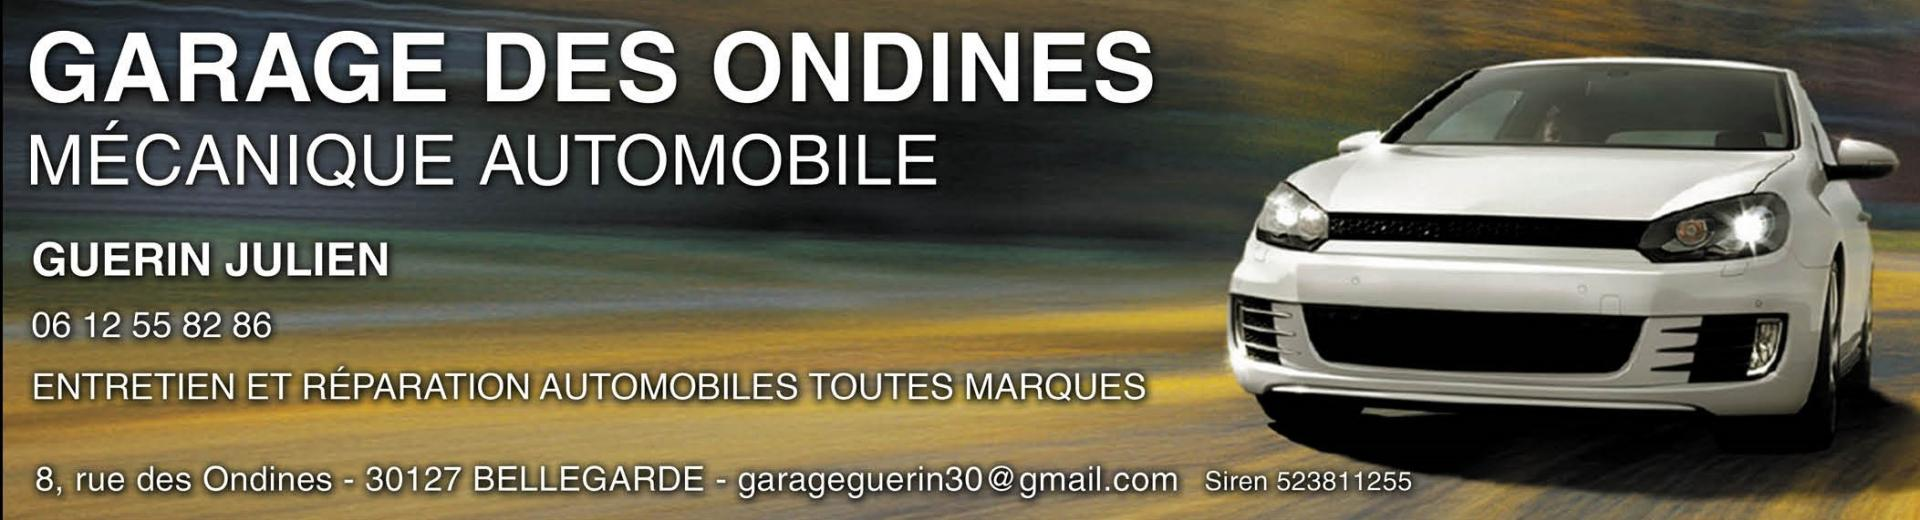 Garage des Ondines